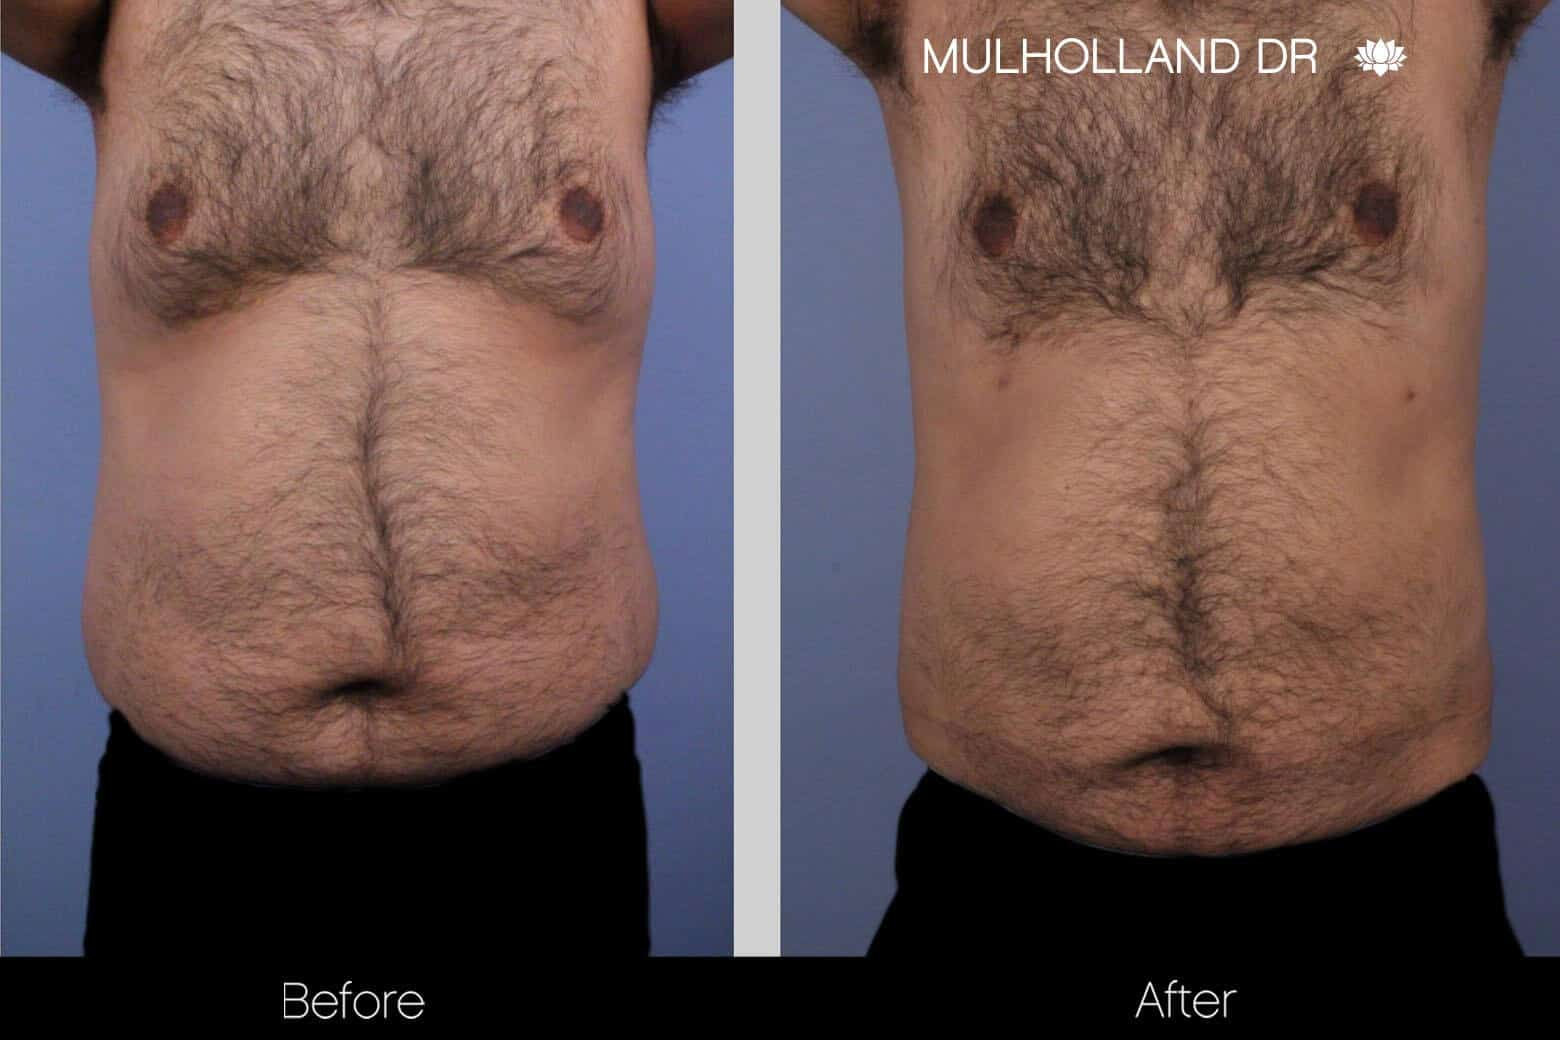 Abdomen Liposuction - Before and After Gallery - Patient Photo 6